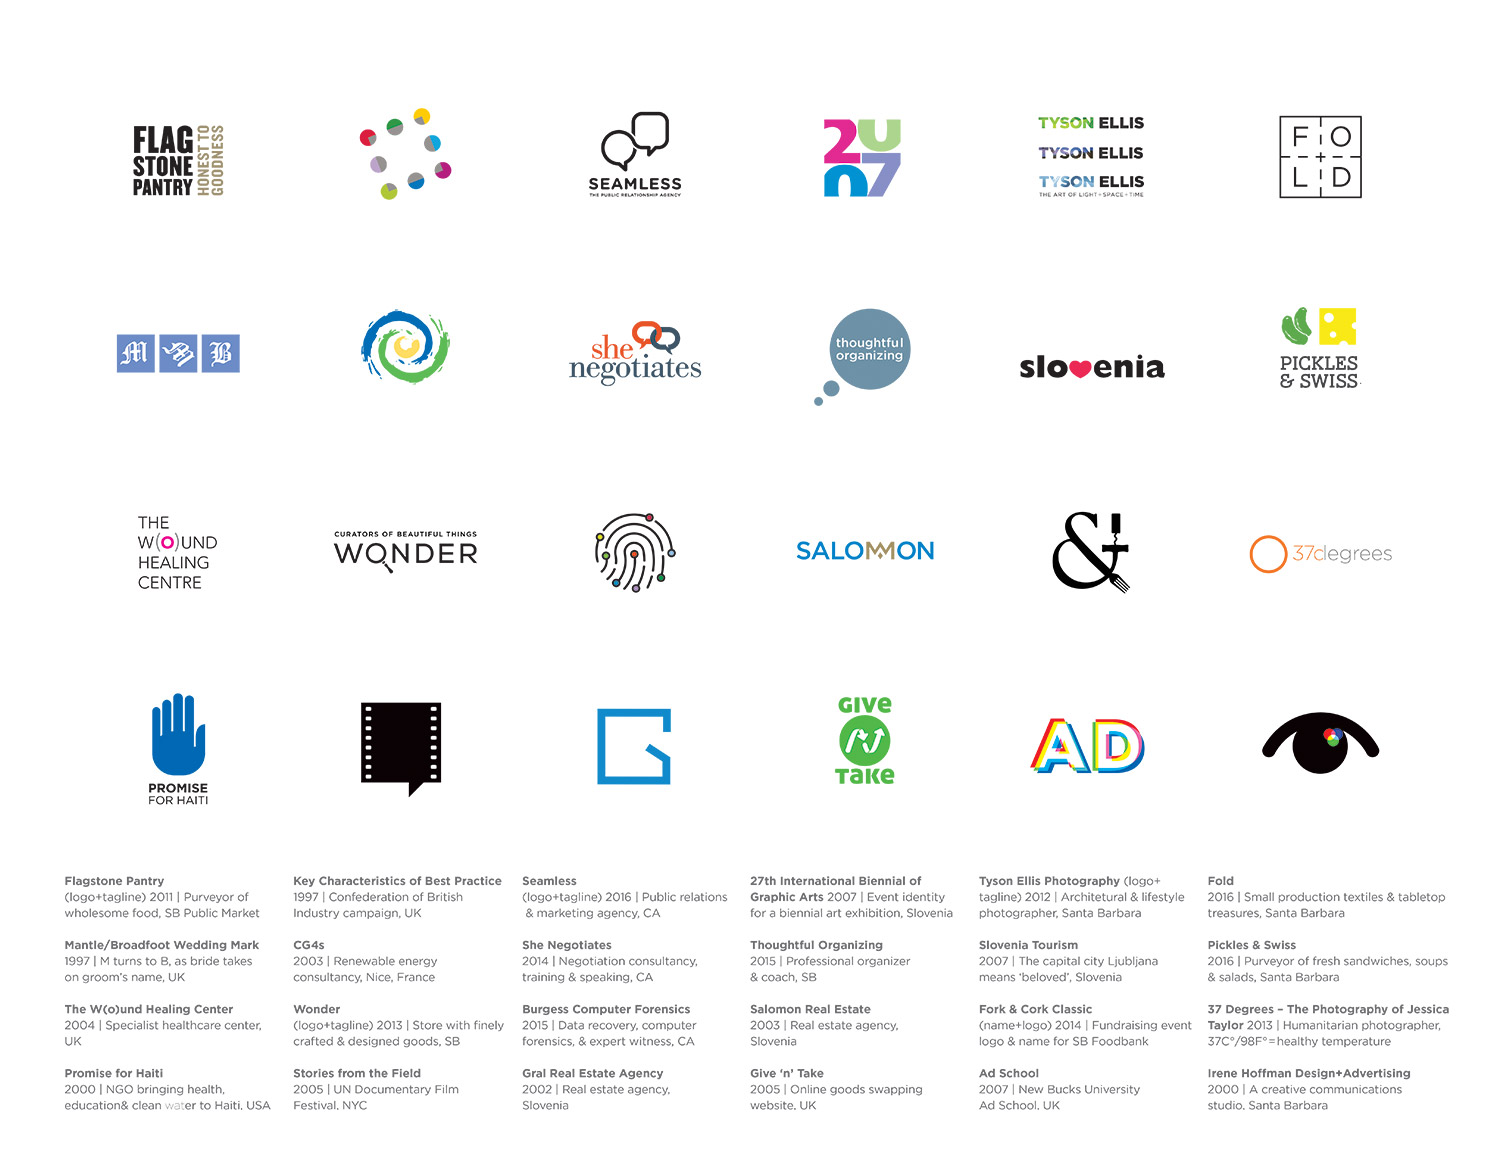 Logos and marks by Irene Hoffman,1997-2016